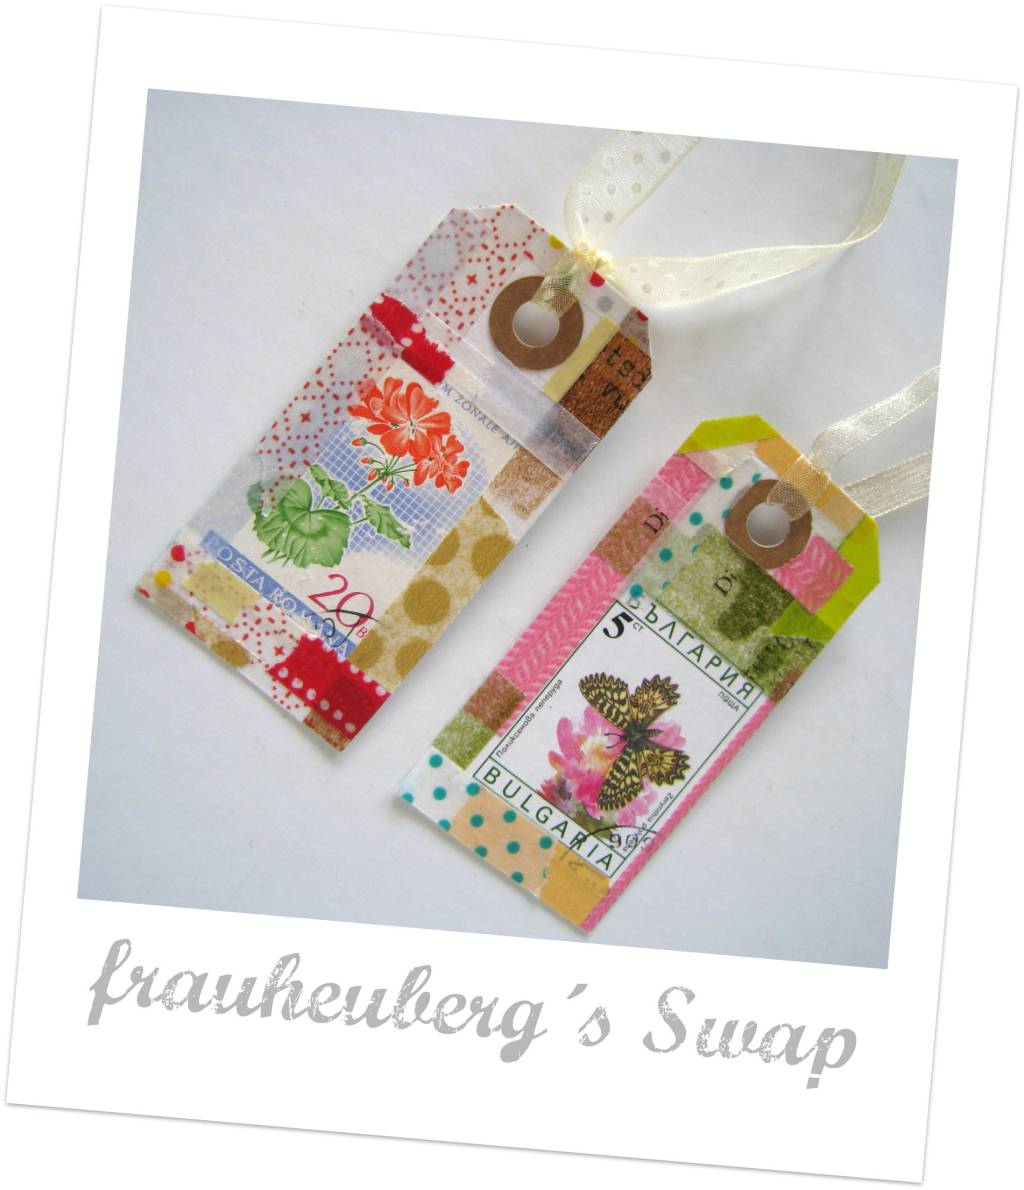 frauheuberg swap...two little handmade tags